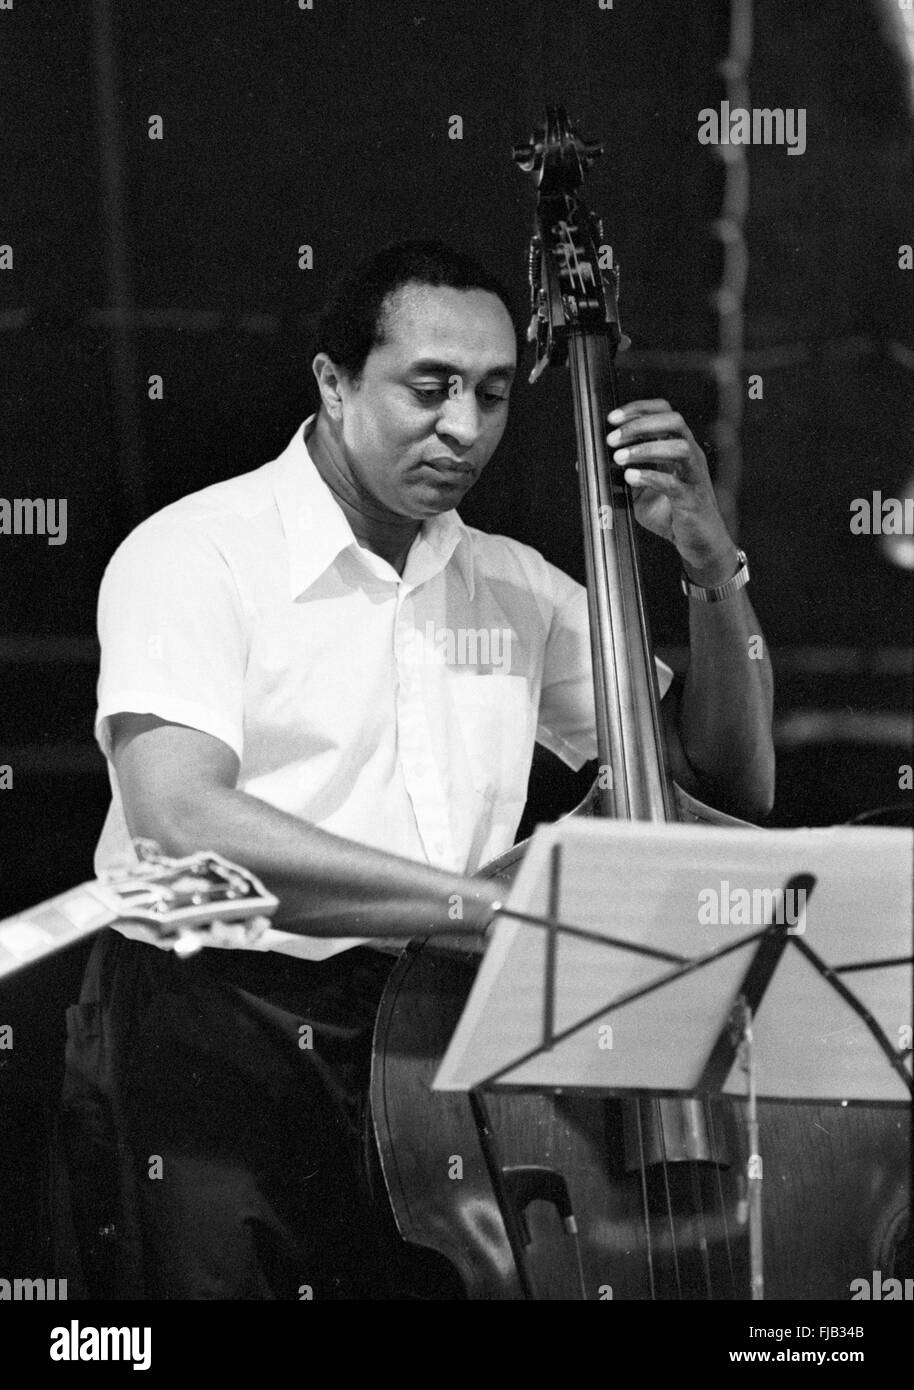 Reggie Johnson playing double bass at the Kool Jazz Festival in Stanhope, New Jersey, June 1982. - Stock Image